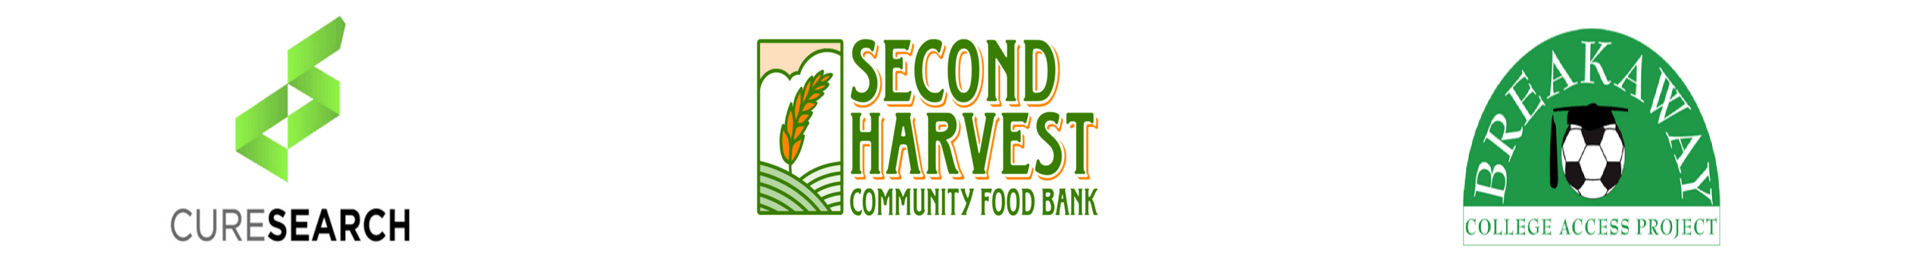 Cure Search, Second Harvest, and The Breakaway College Access Project.